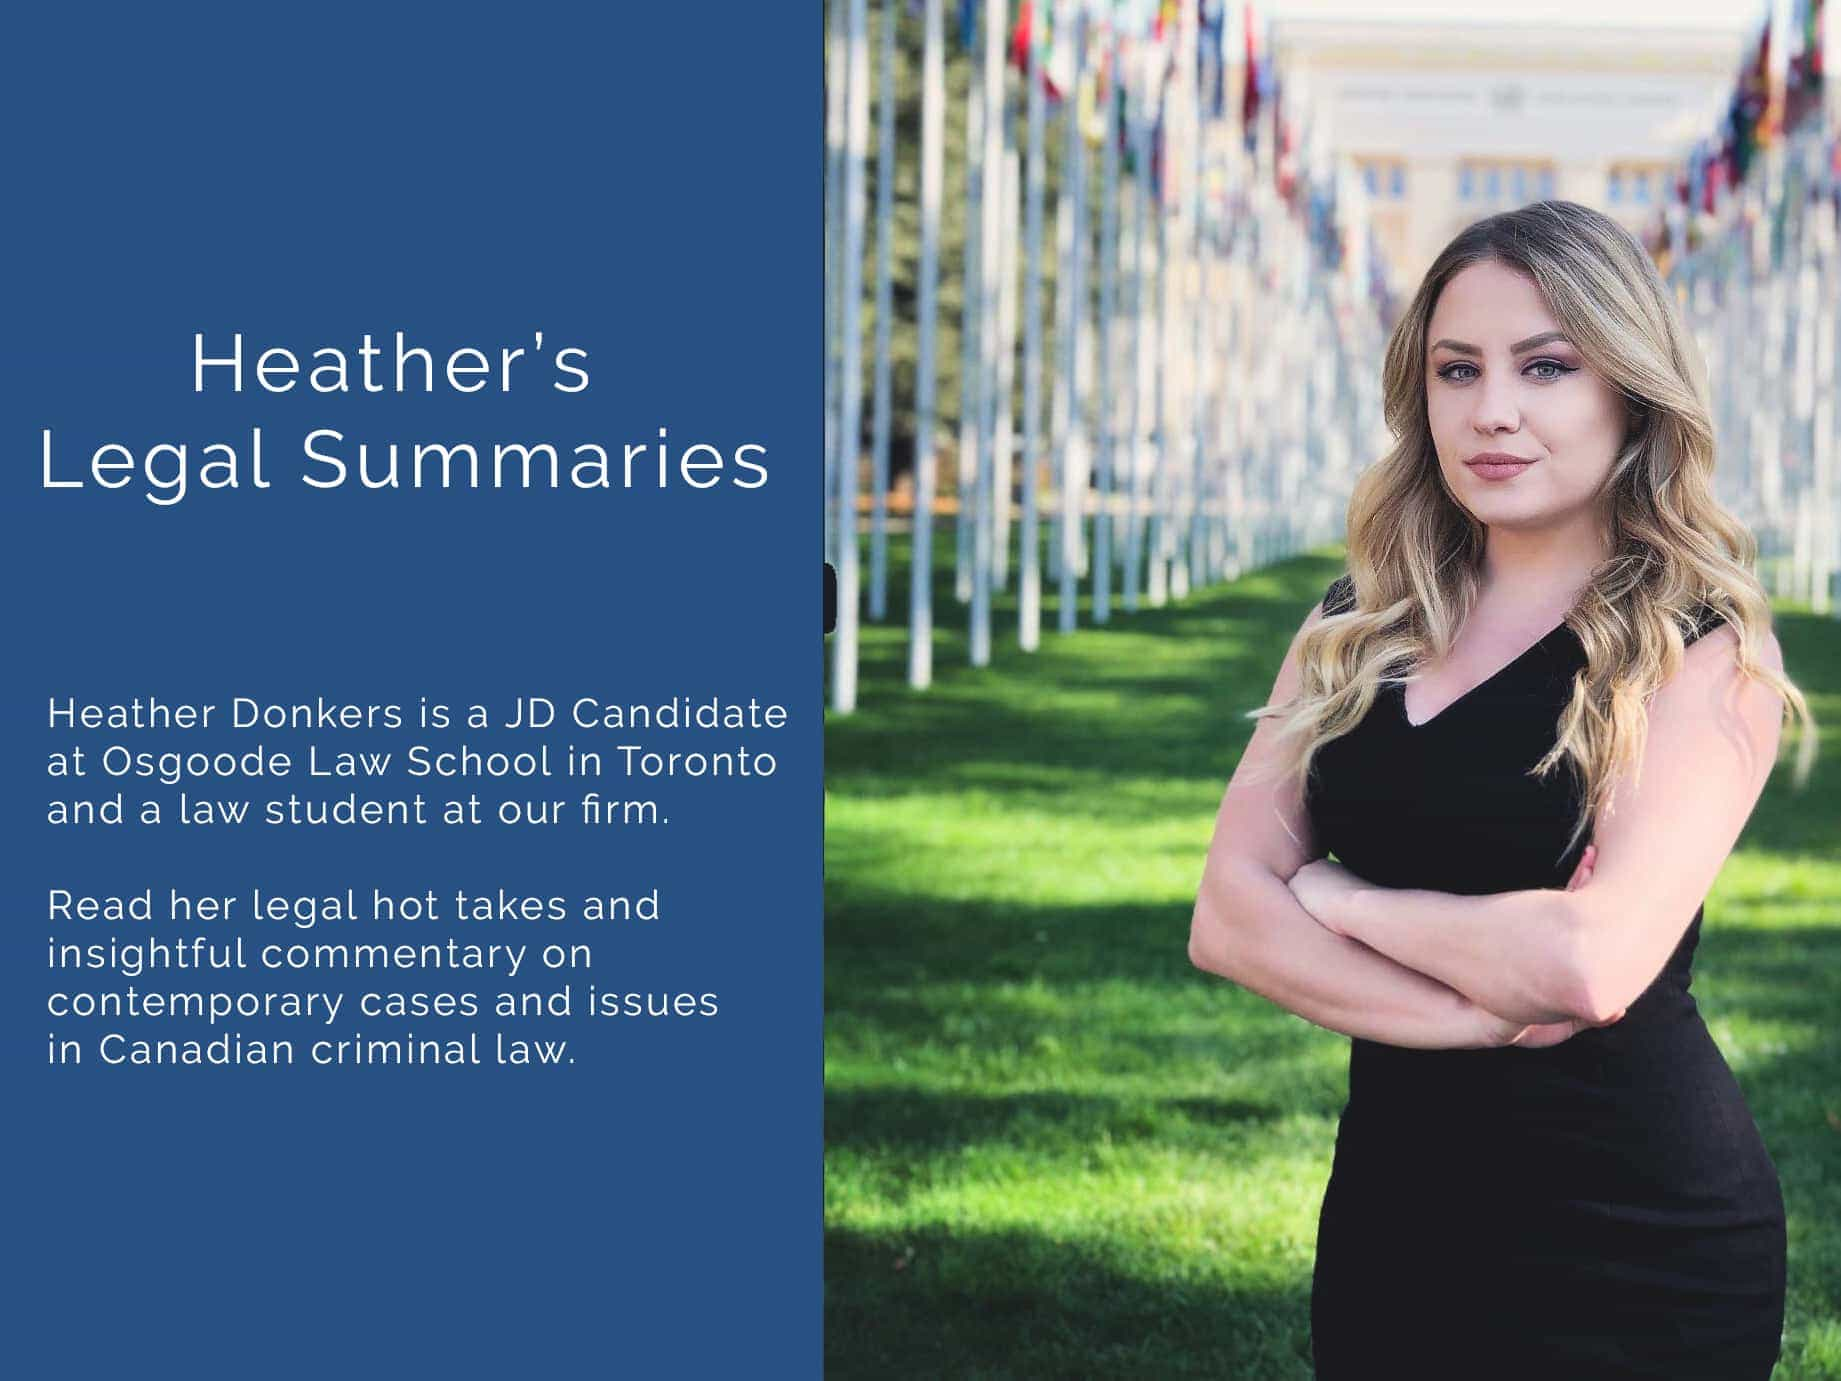 Heather Donkers Summaries